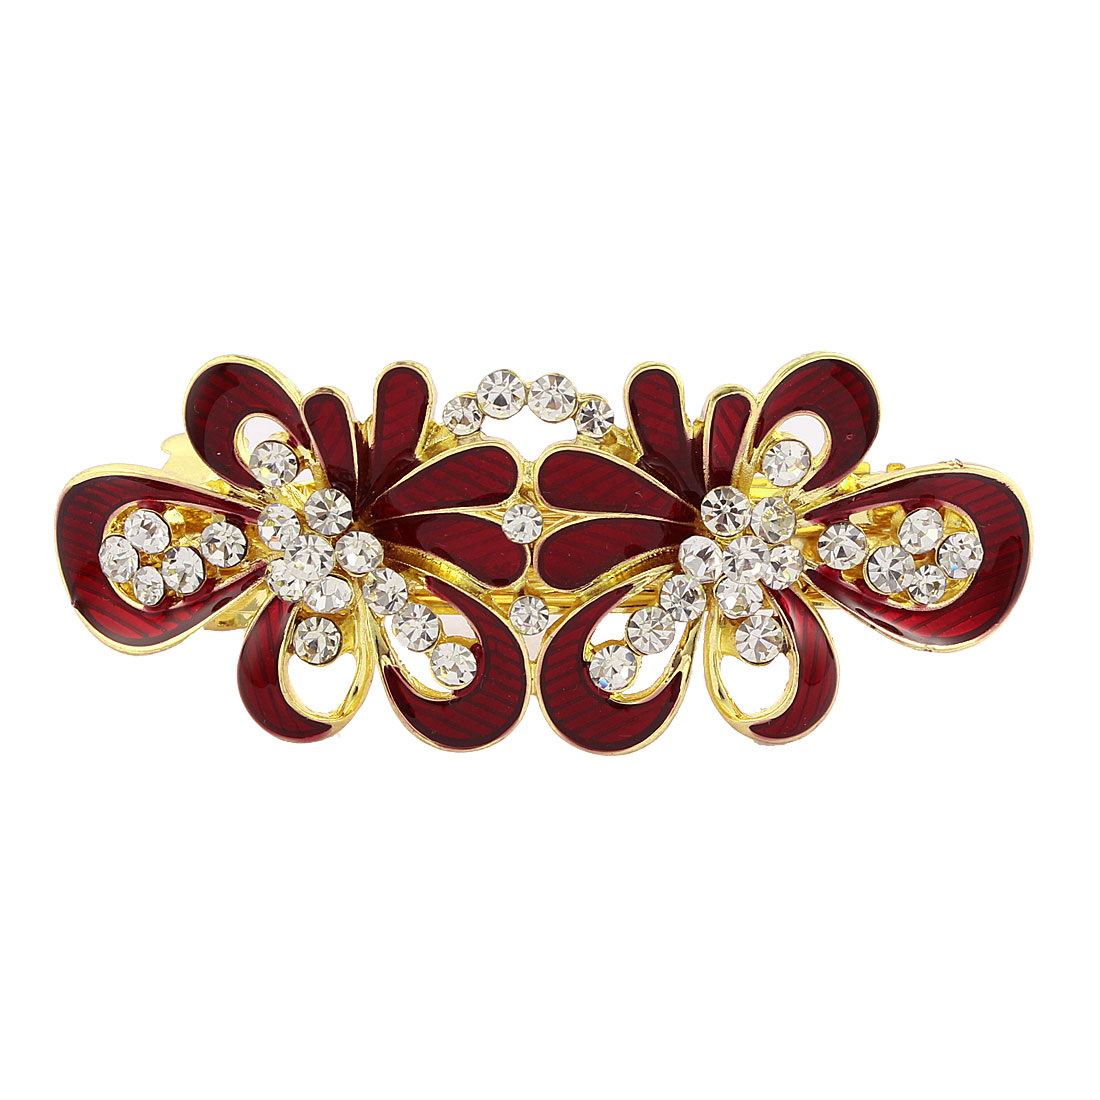 Women Rhinestone Detail Floral Shape Spring Loaded Hair Barrette Clip Red